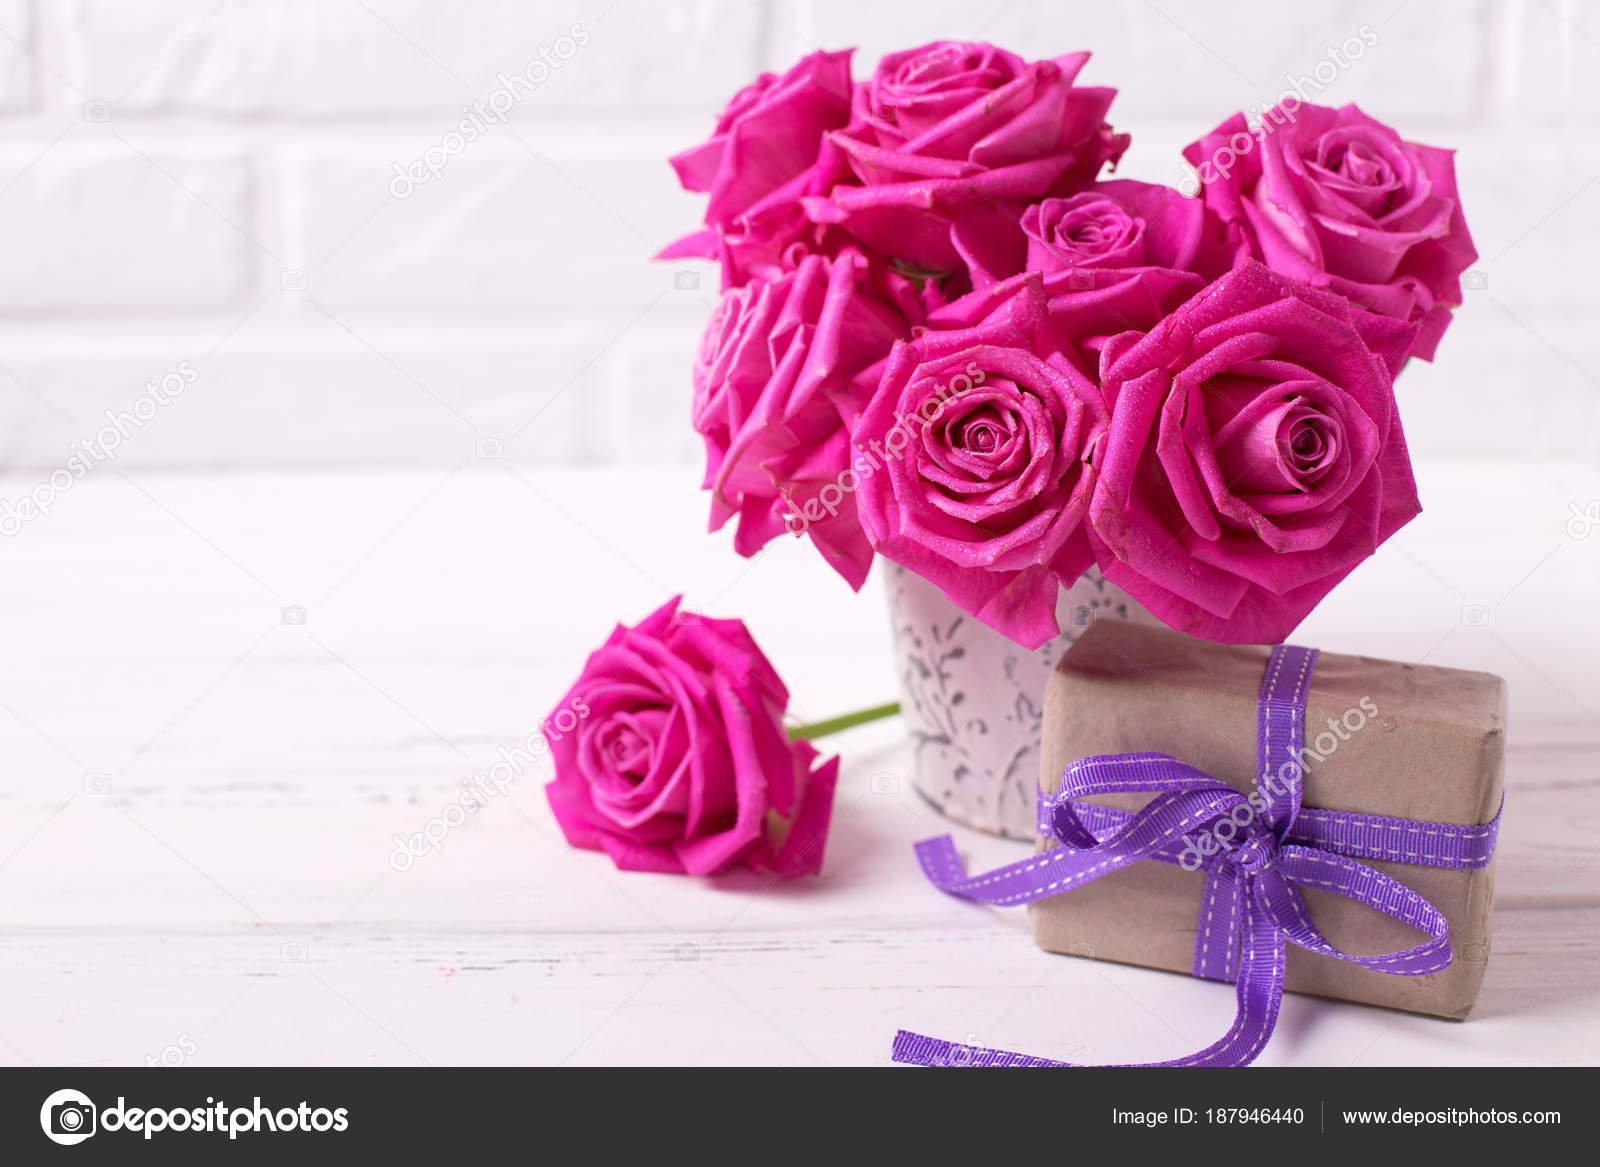 Bright pink roses flowers pot box present white wooden background bright pink roses flowers in pot and box with present on white wooden background selective focus place for text photo by daffodil mightylinksfo Choice Image